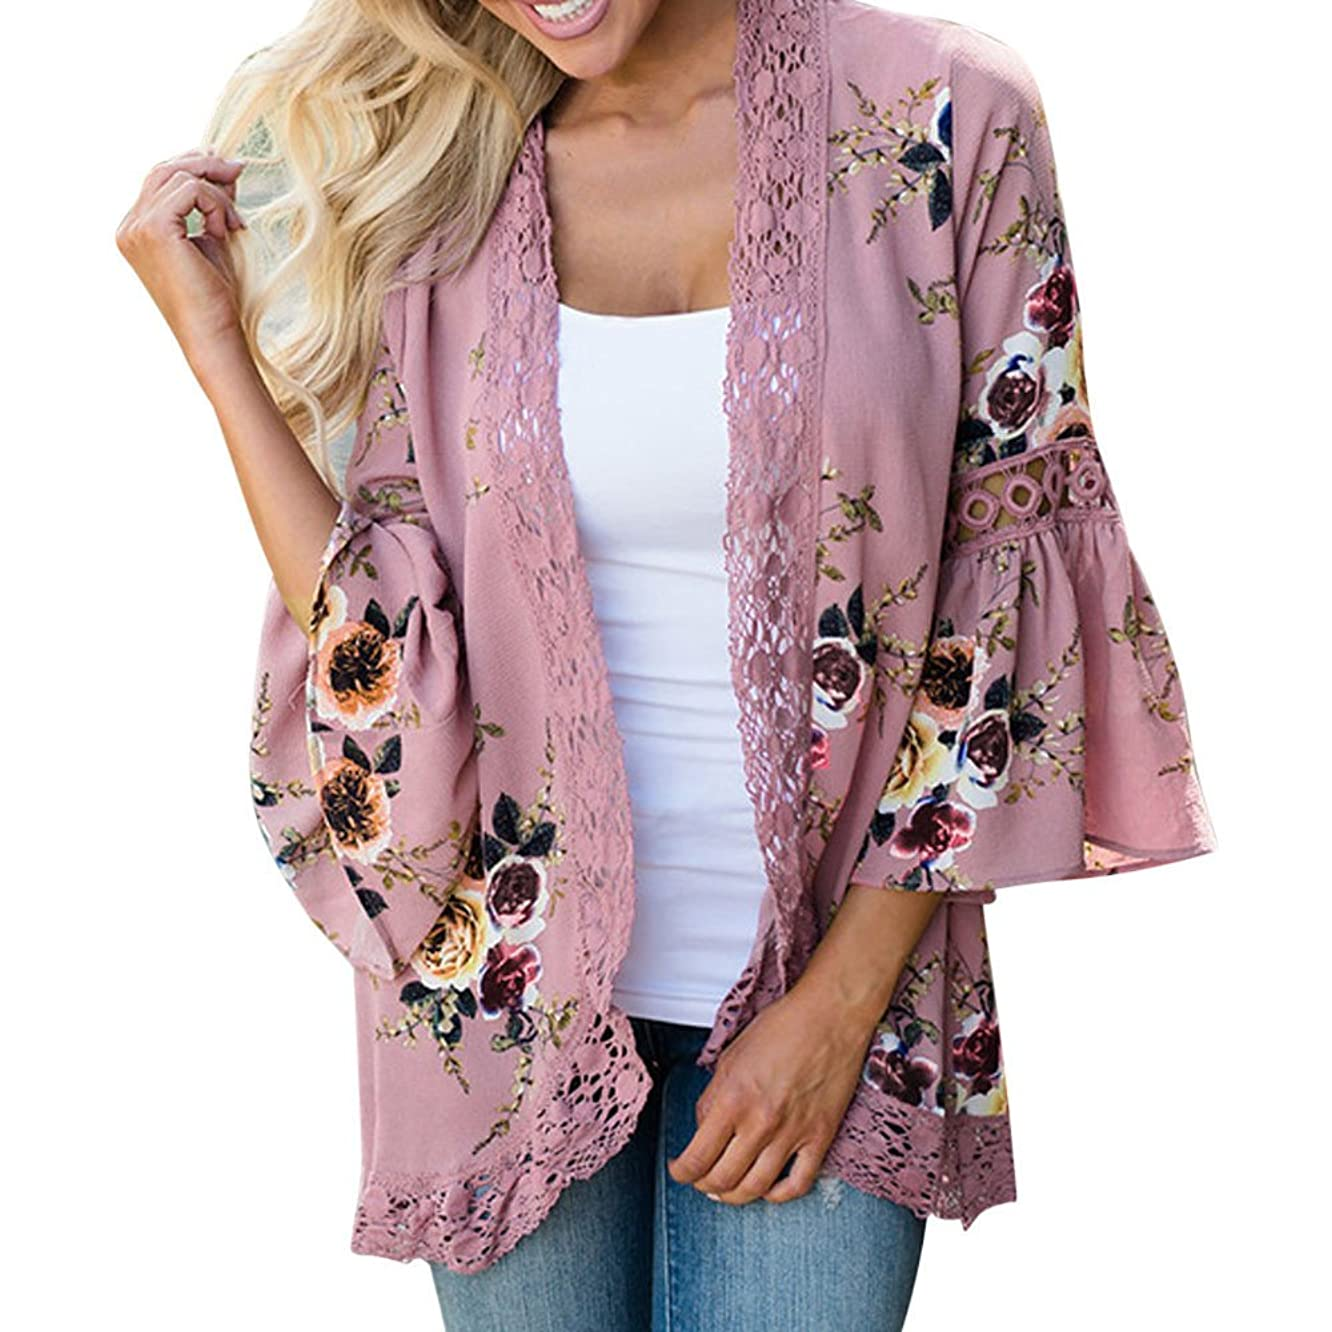 HAALIFE??Womens Floral Loose Bell Sleeve Kimono Cardigan Lace Patchwork Cover Up Blouse Top